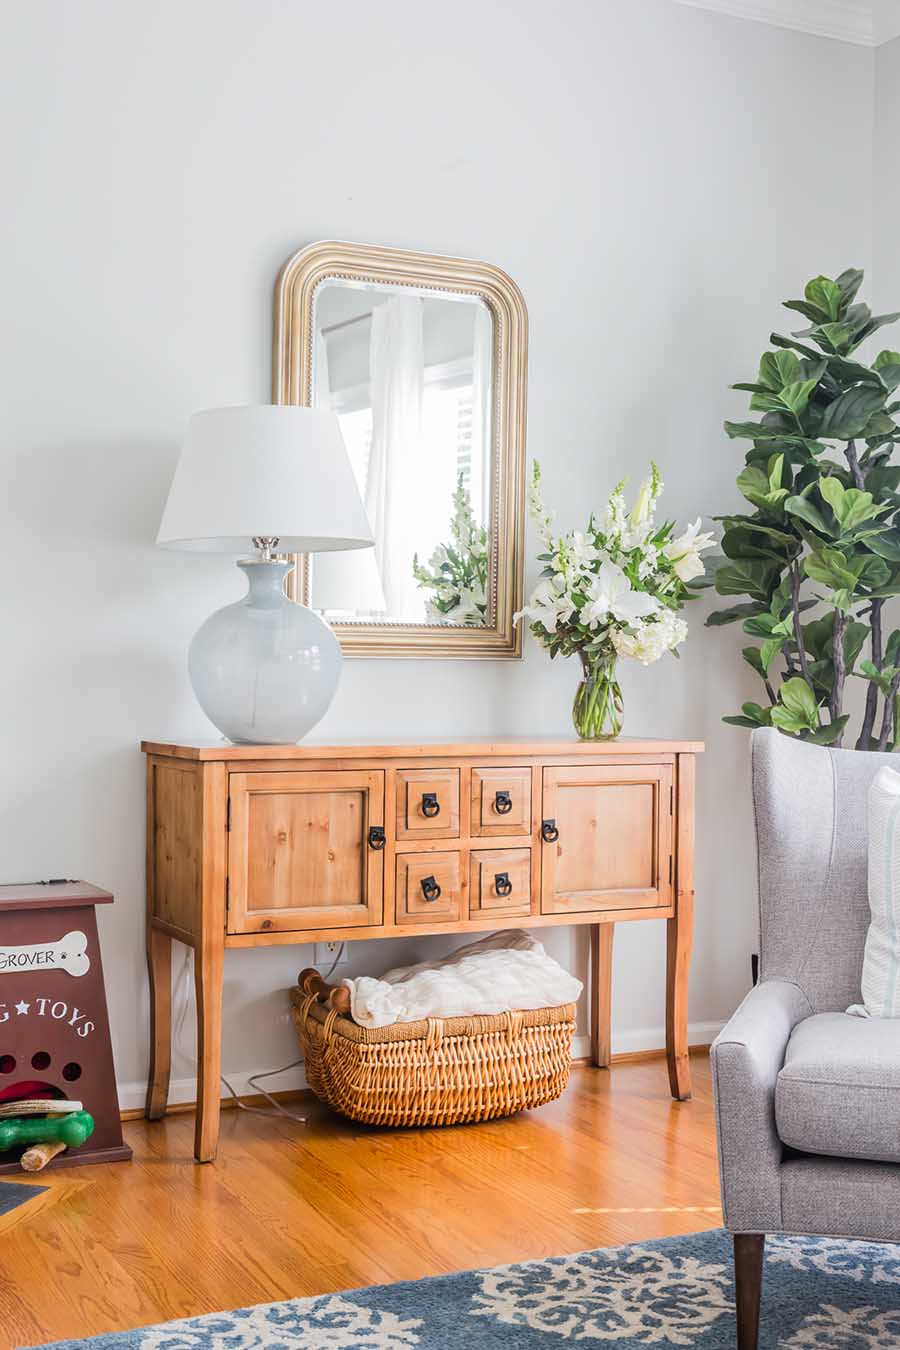 Havenly Design Story: A Curious Case Of Self Home Envy